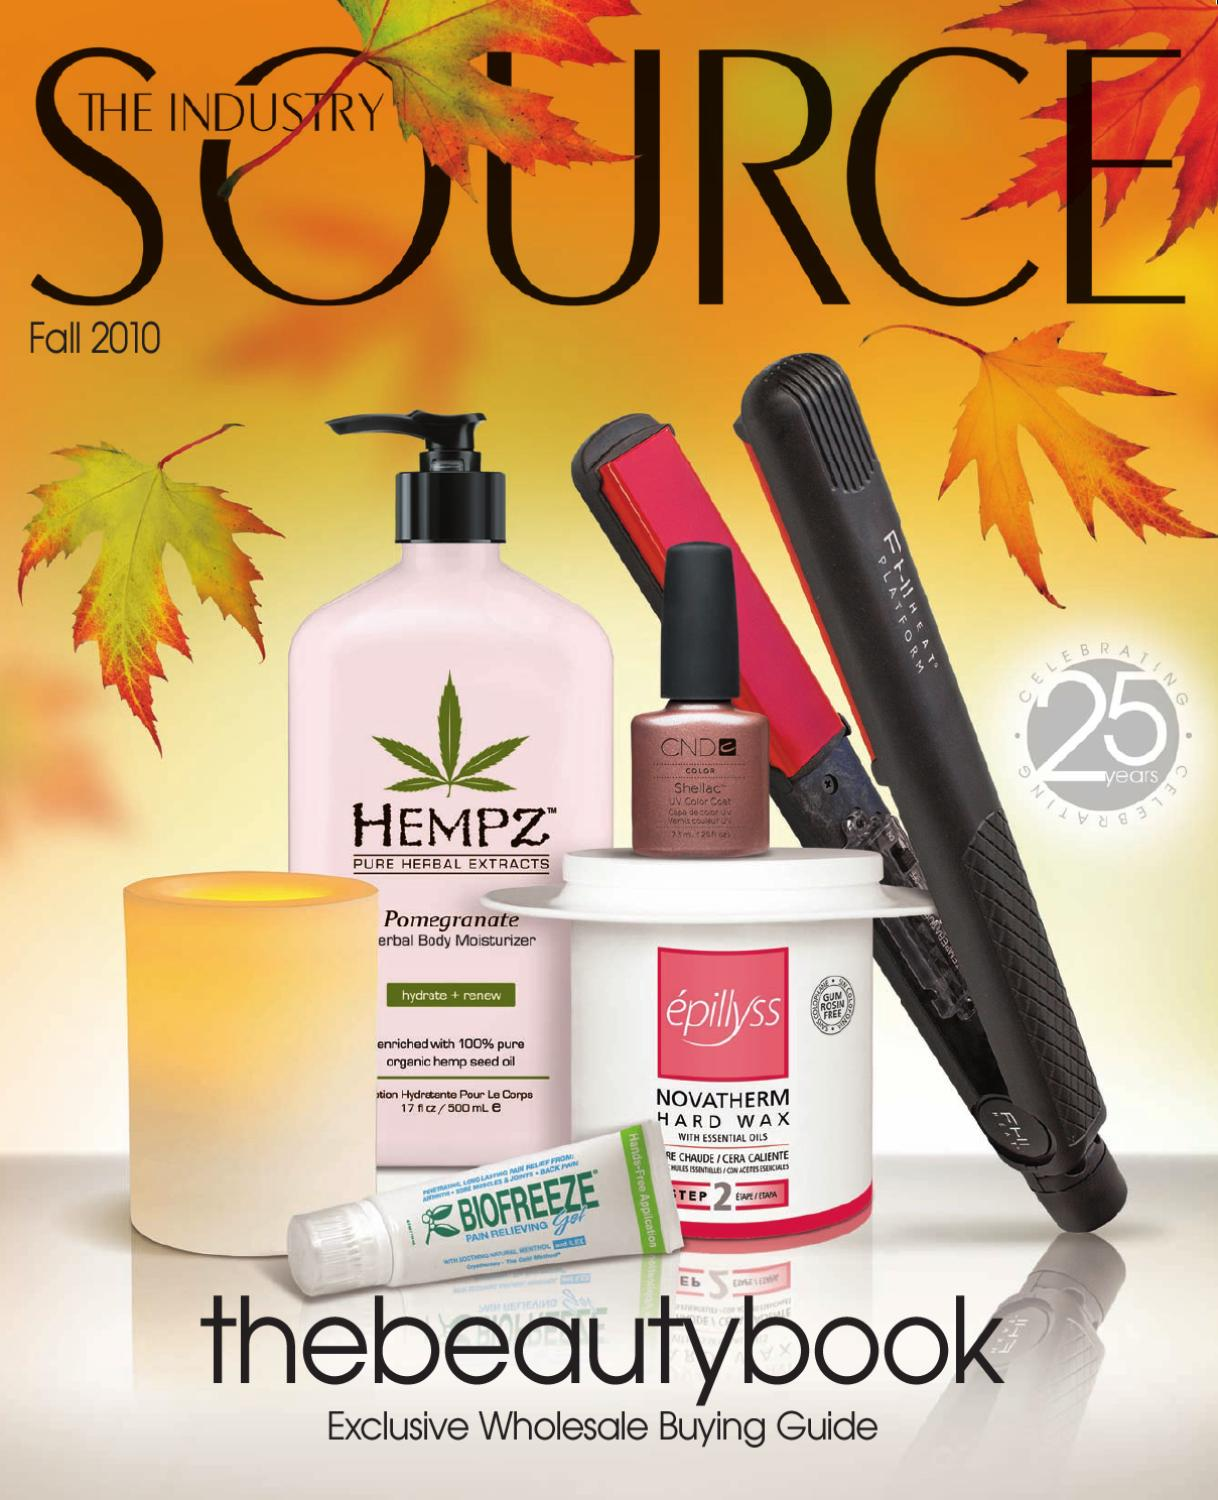 The Industry Source Fall 2010 the beautybook by TNG Worldwide - issuu